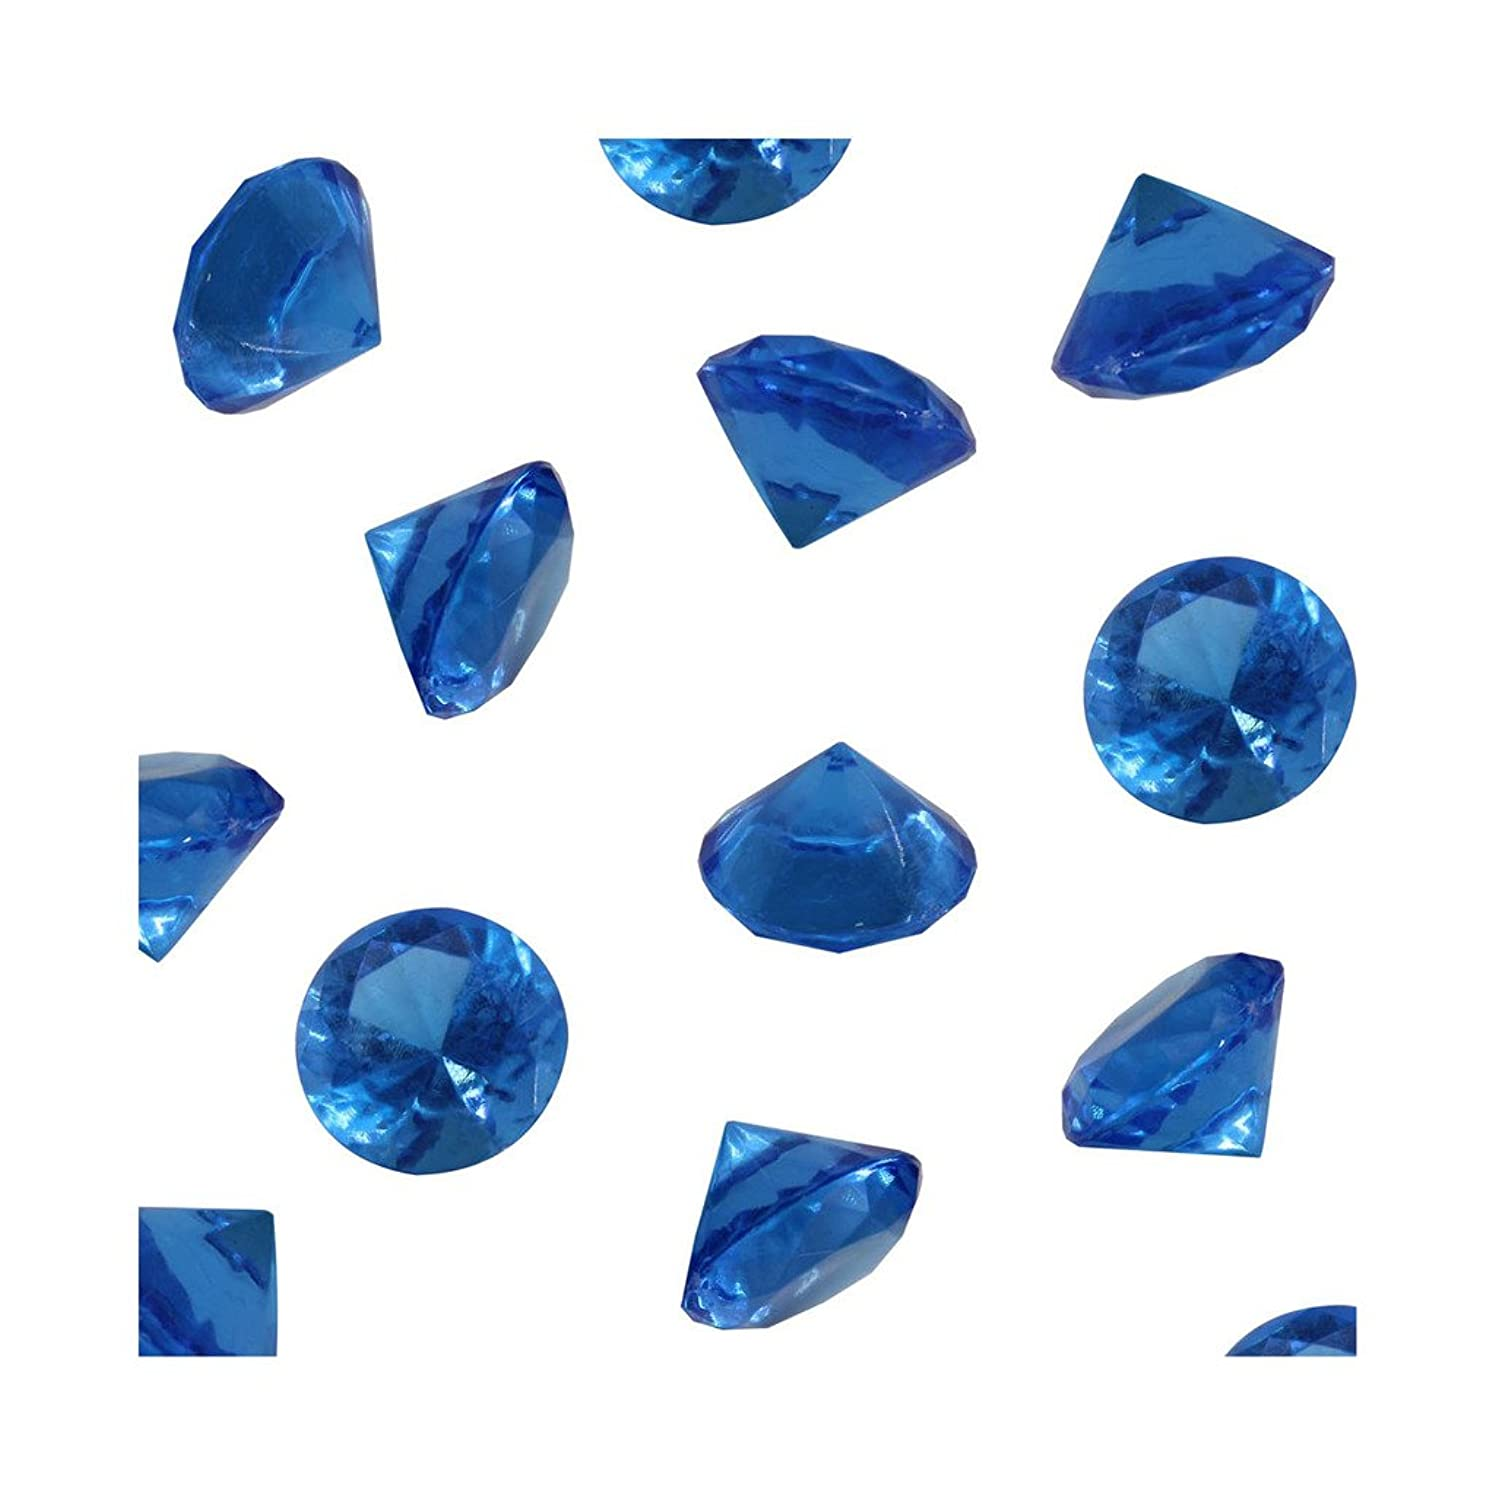 Royal Acrylic Diamond Vase Fillers 1 Pound - 240 pcs 3/4 Inch Wedding Party Event Banquet Birthday Decoration Crystals Gem Table Scatters (Royal, 240 pcs)